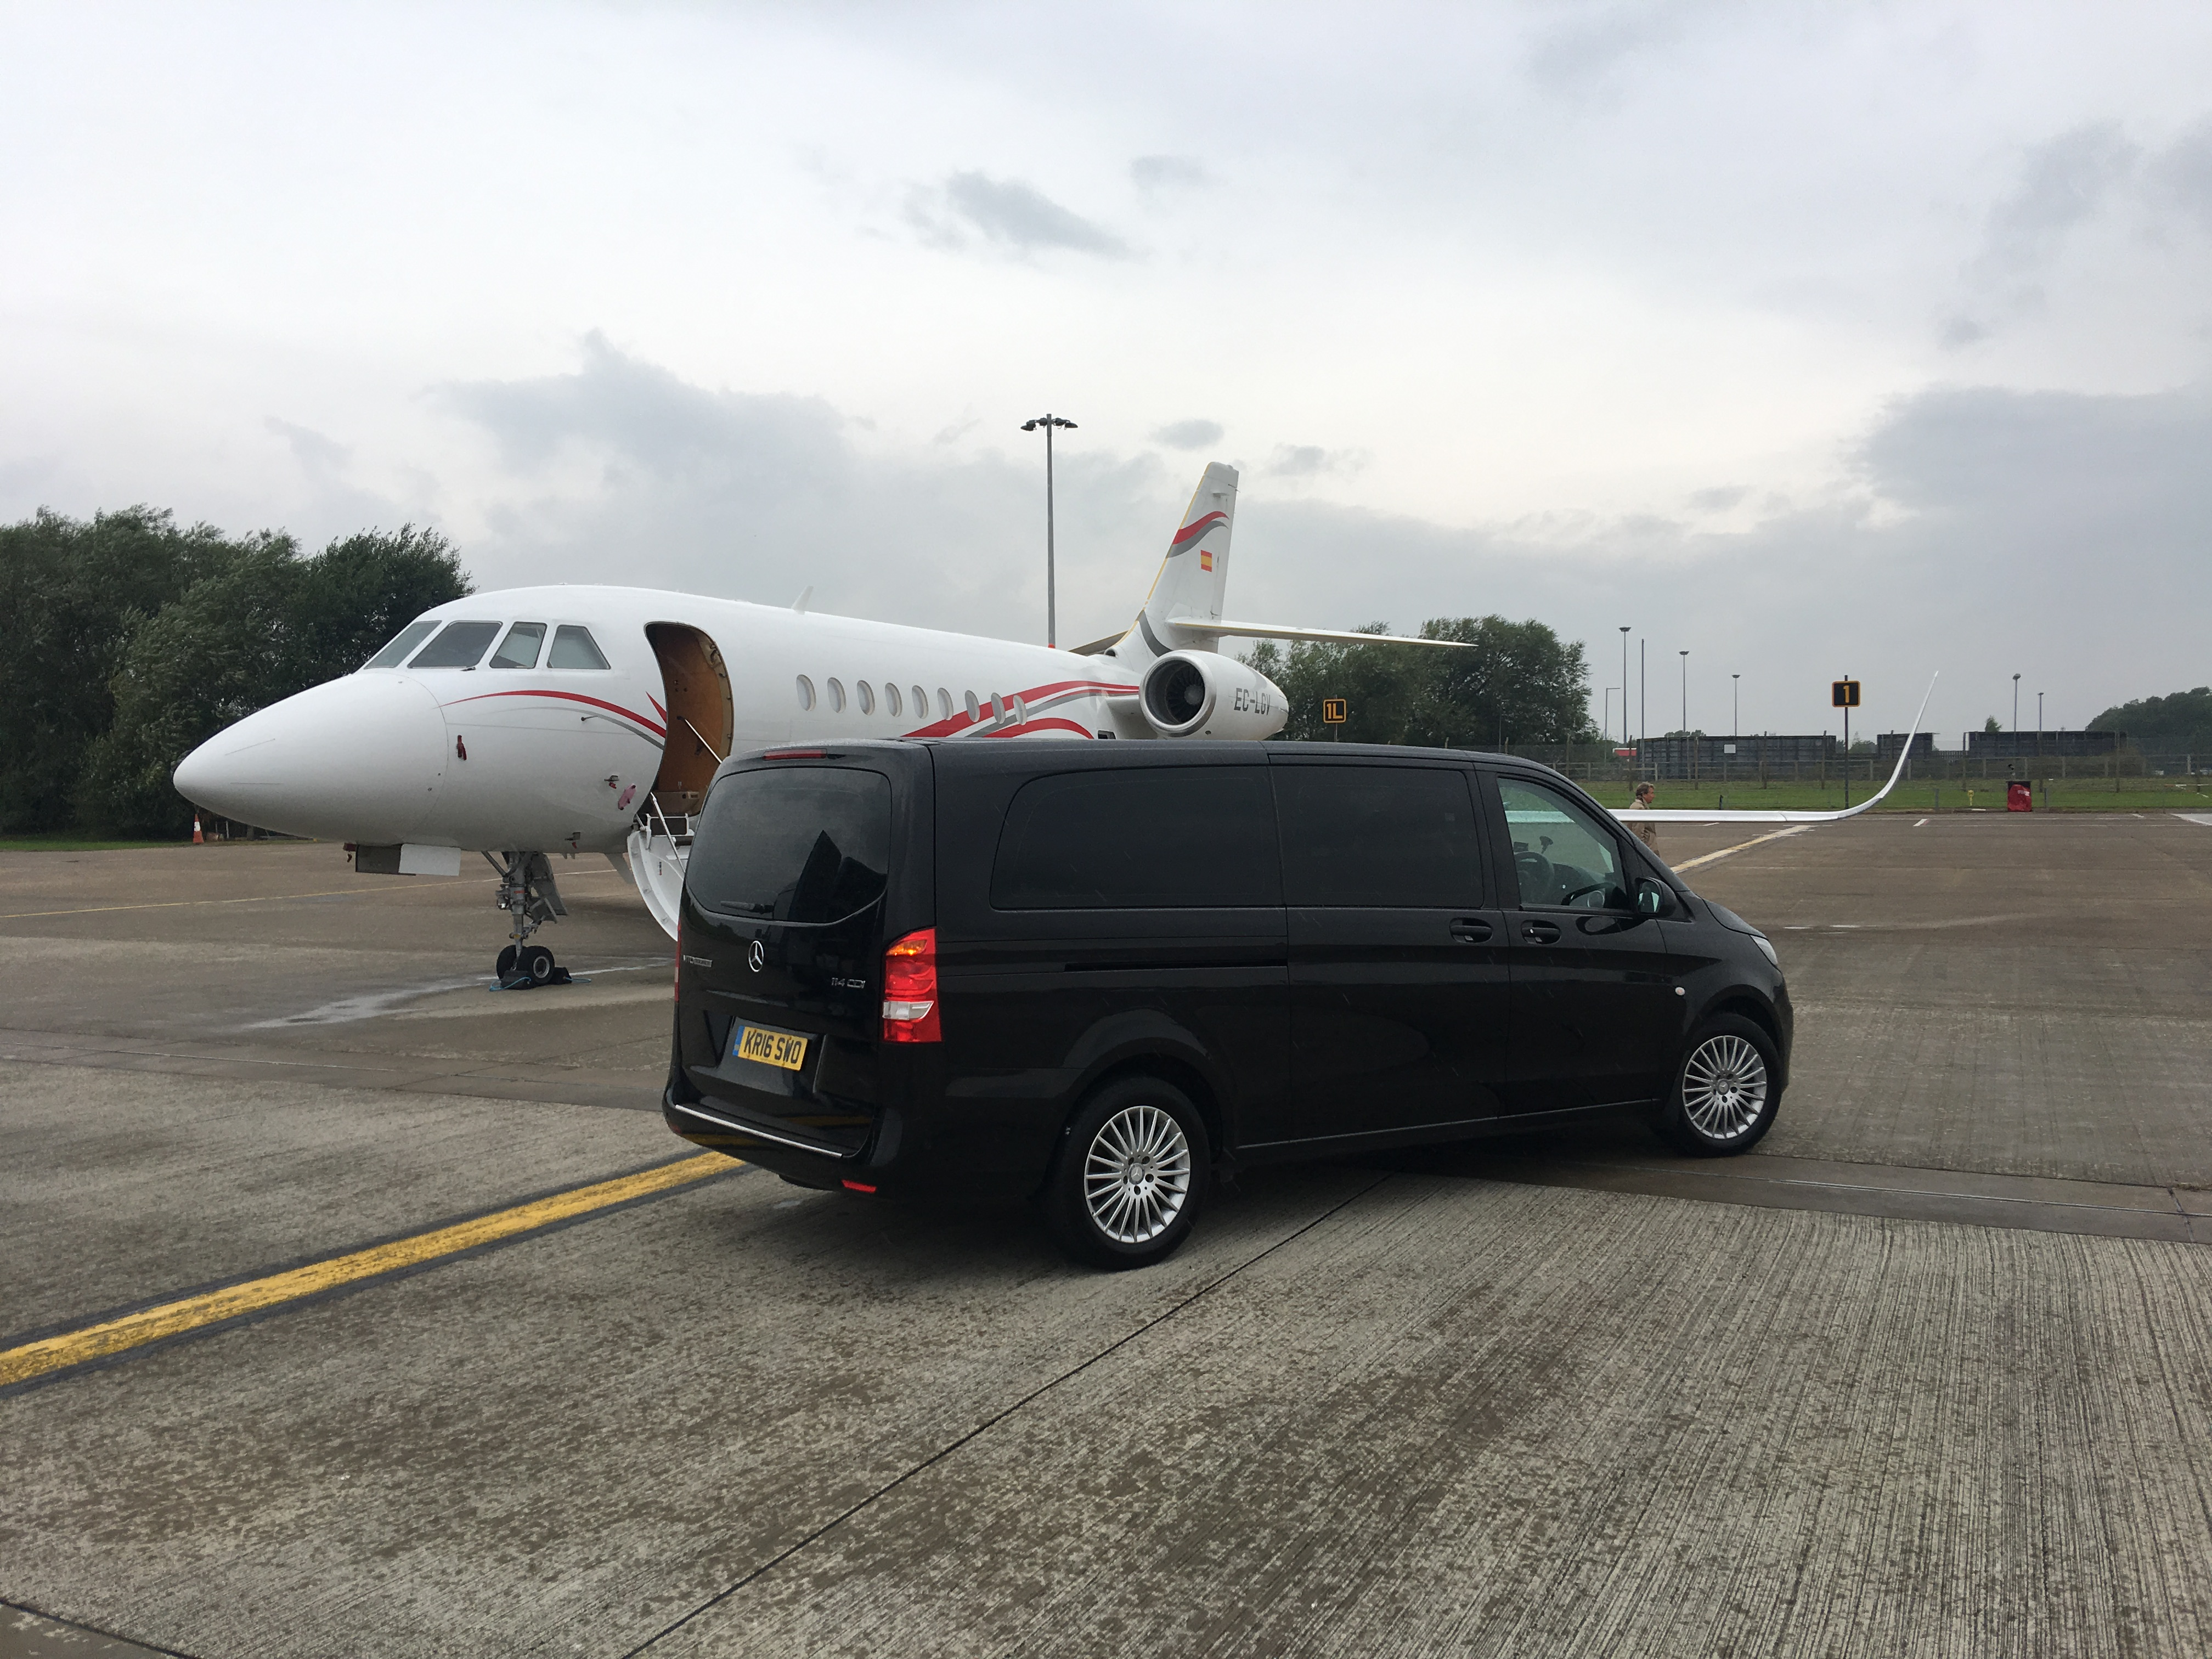 Mercedes V-Class Taxi at Durham Tees Airport